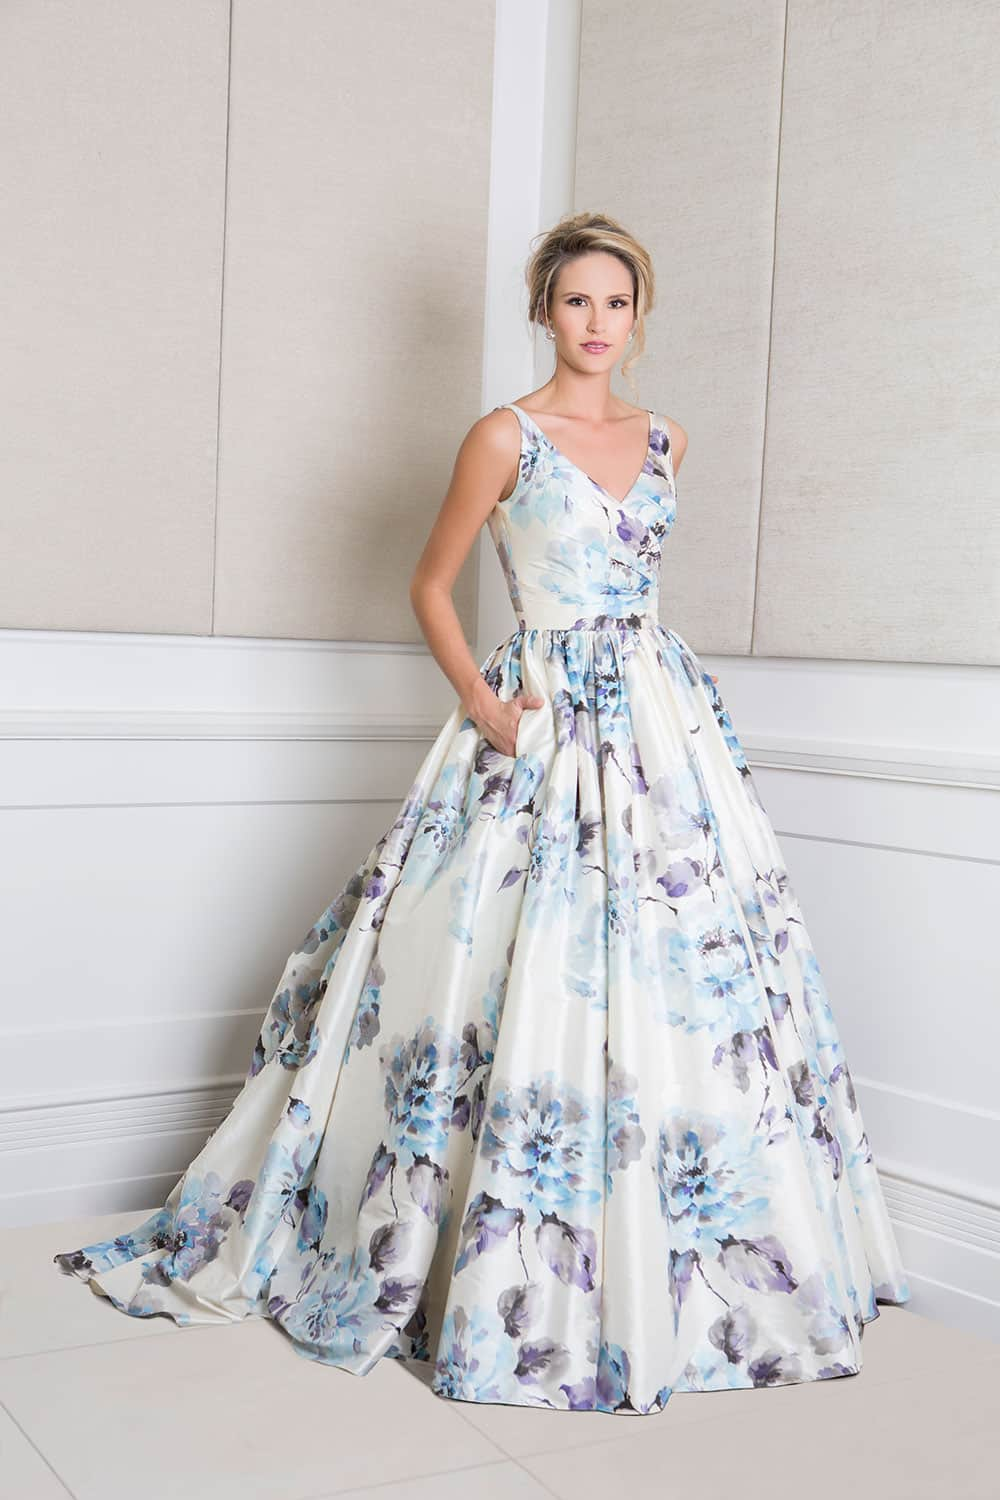 Blue toned floral wedding gown from Wendy Makin.